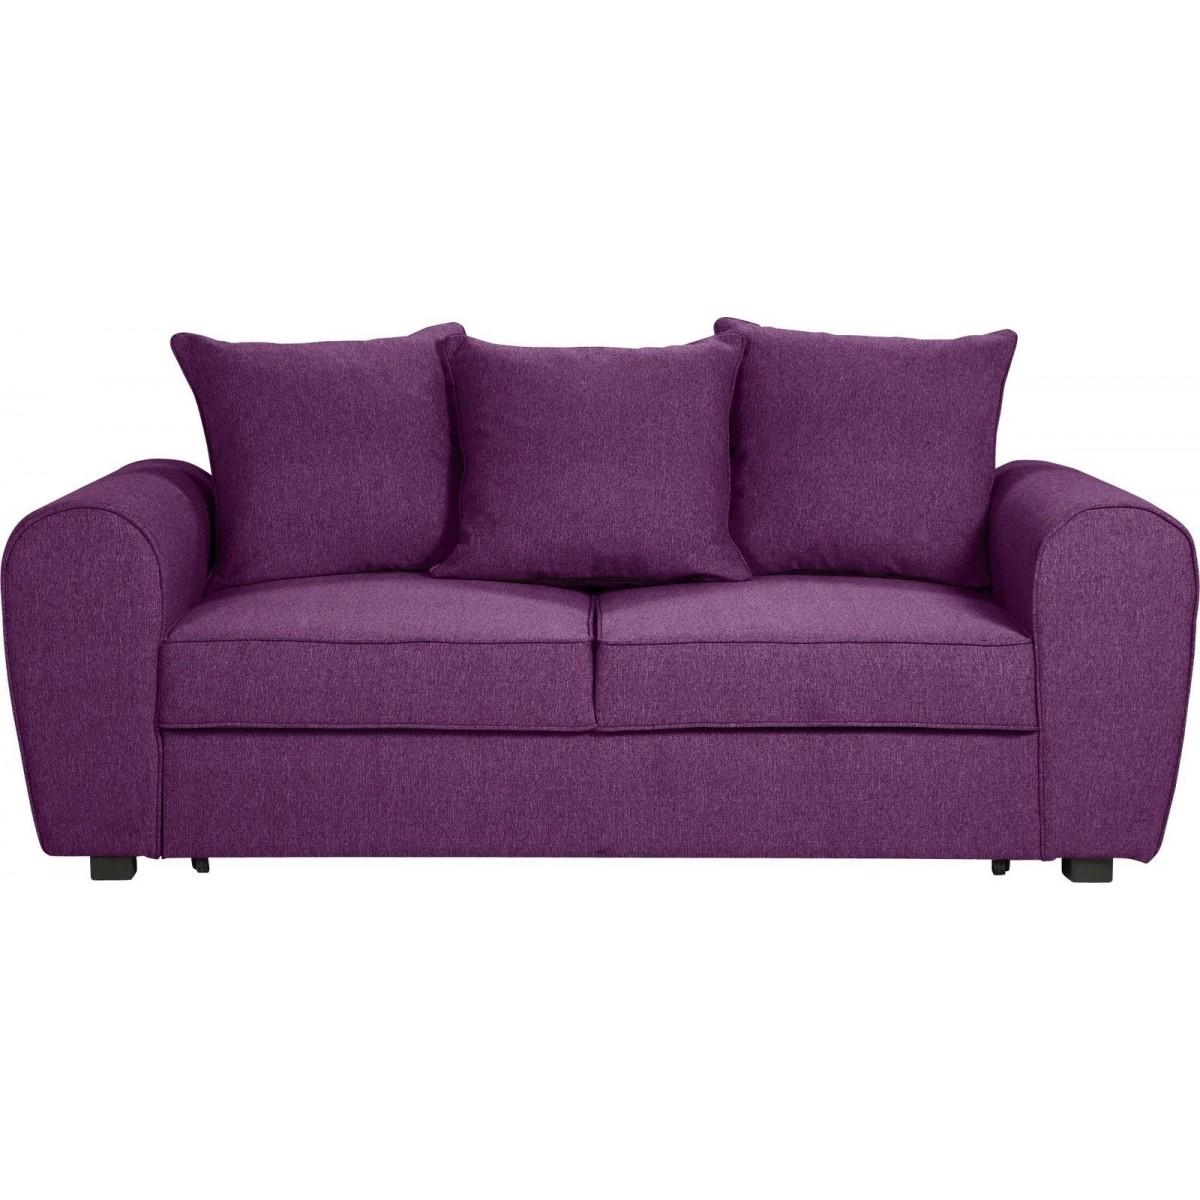 Anne Fabric Sofa Bed – Aubergine – Furnico Village Intended For Cushion Sofa Beds (View 18 of 23)